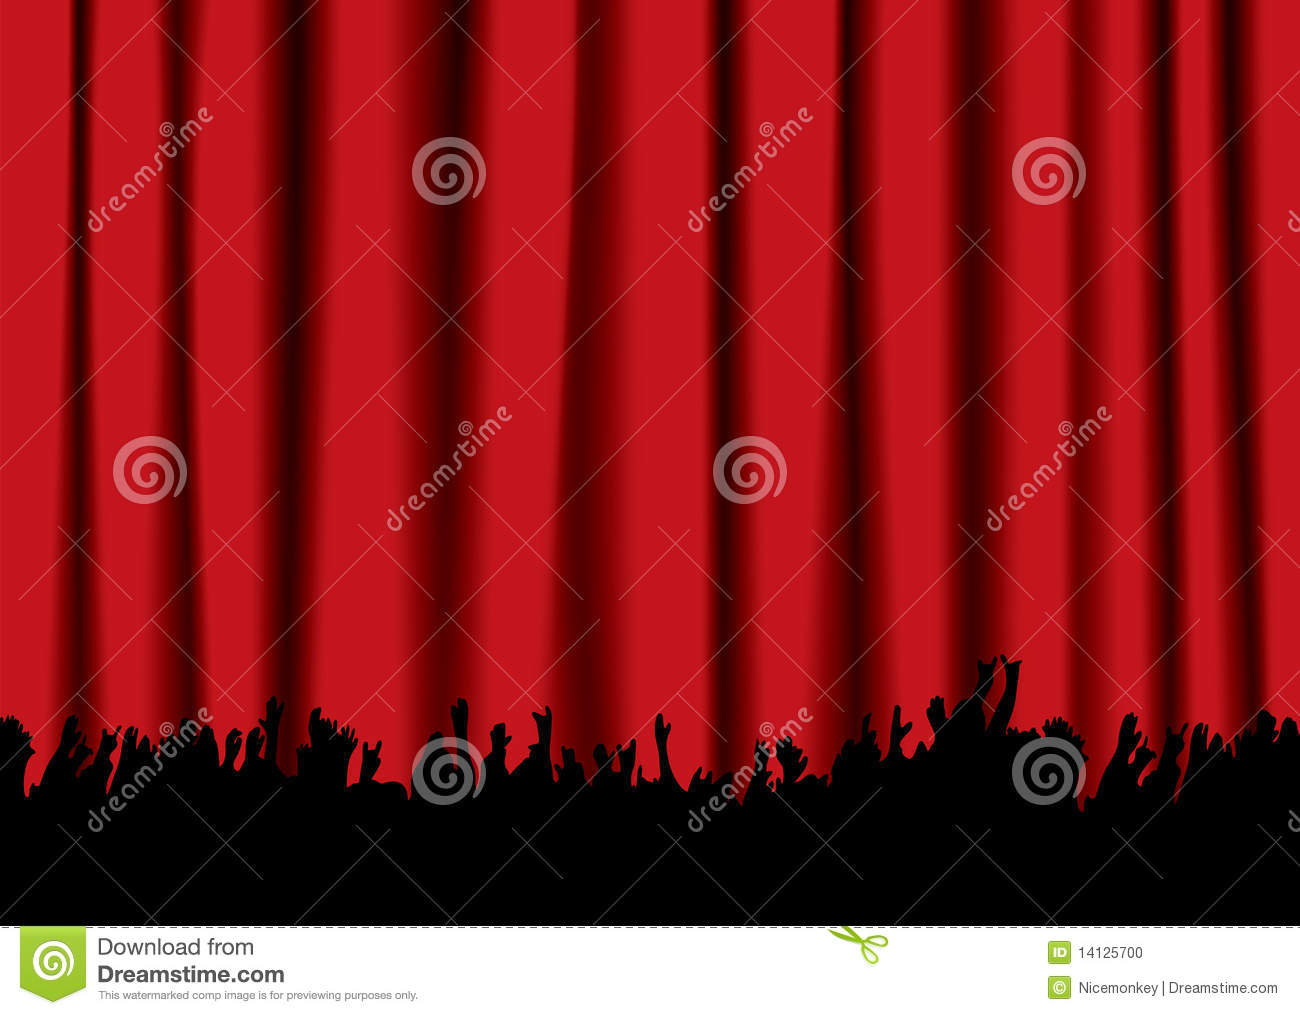 Red stage curtain with lights - Stage Curtain Silhouette Viewing Gallery